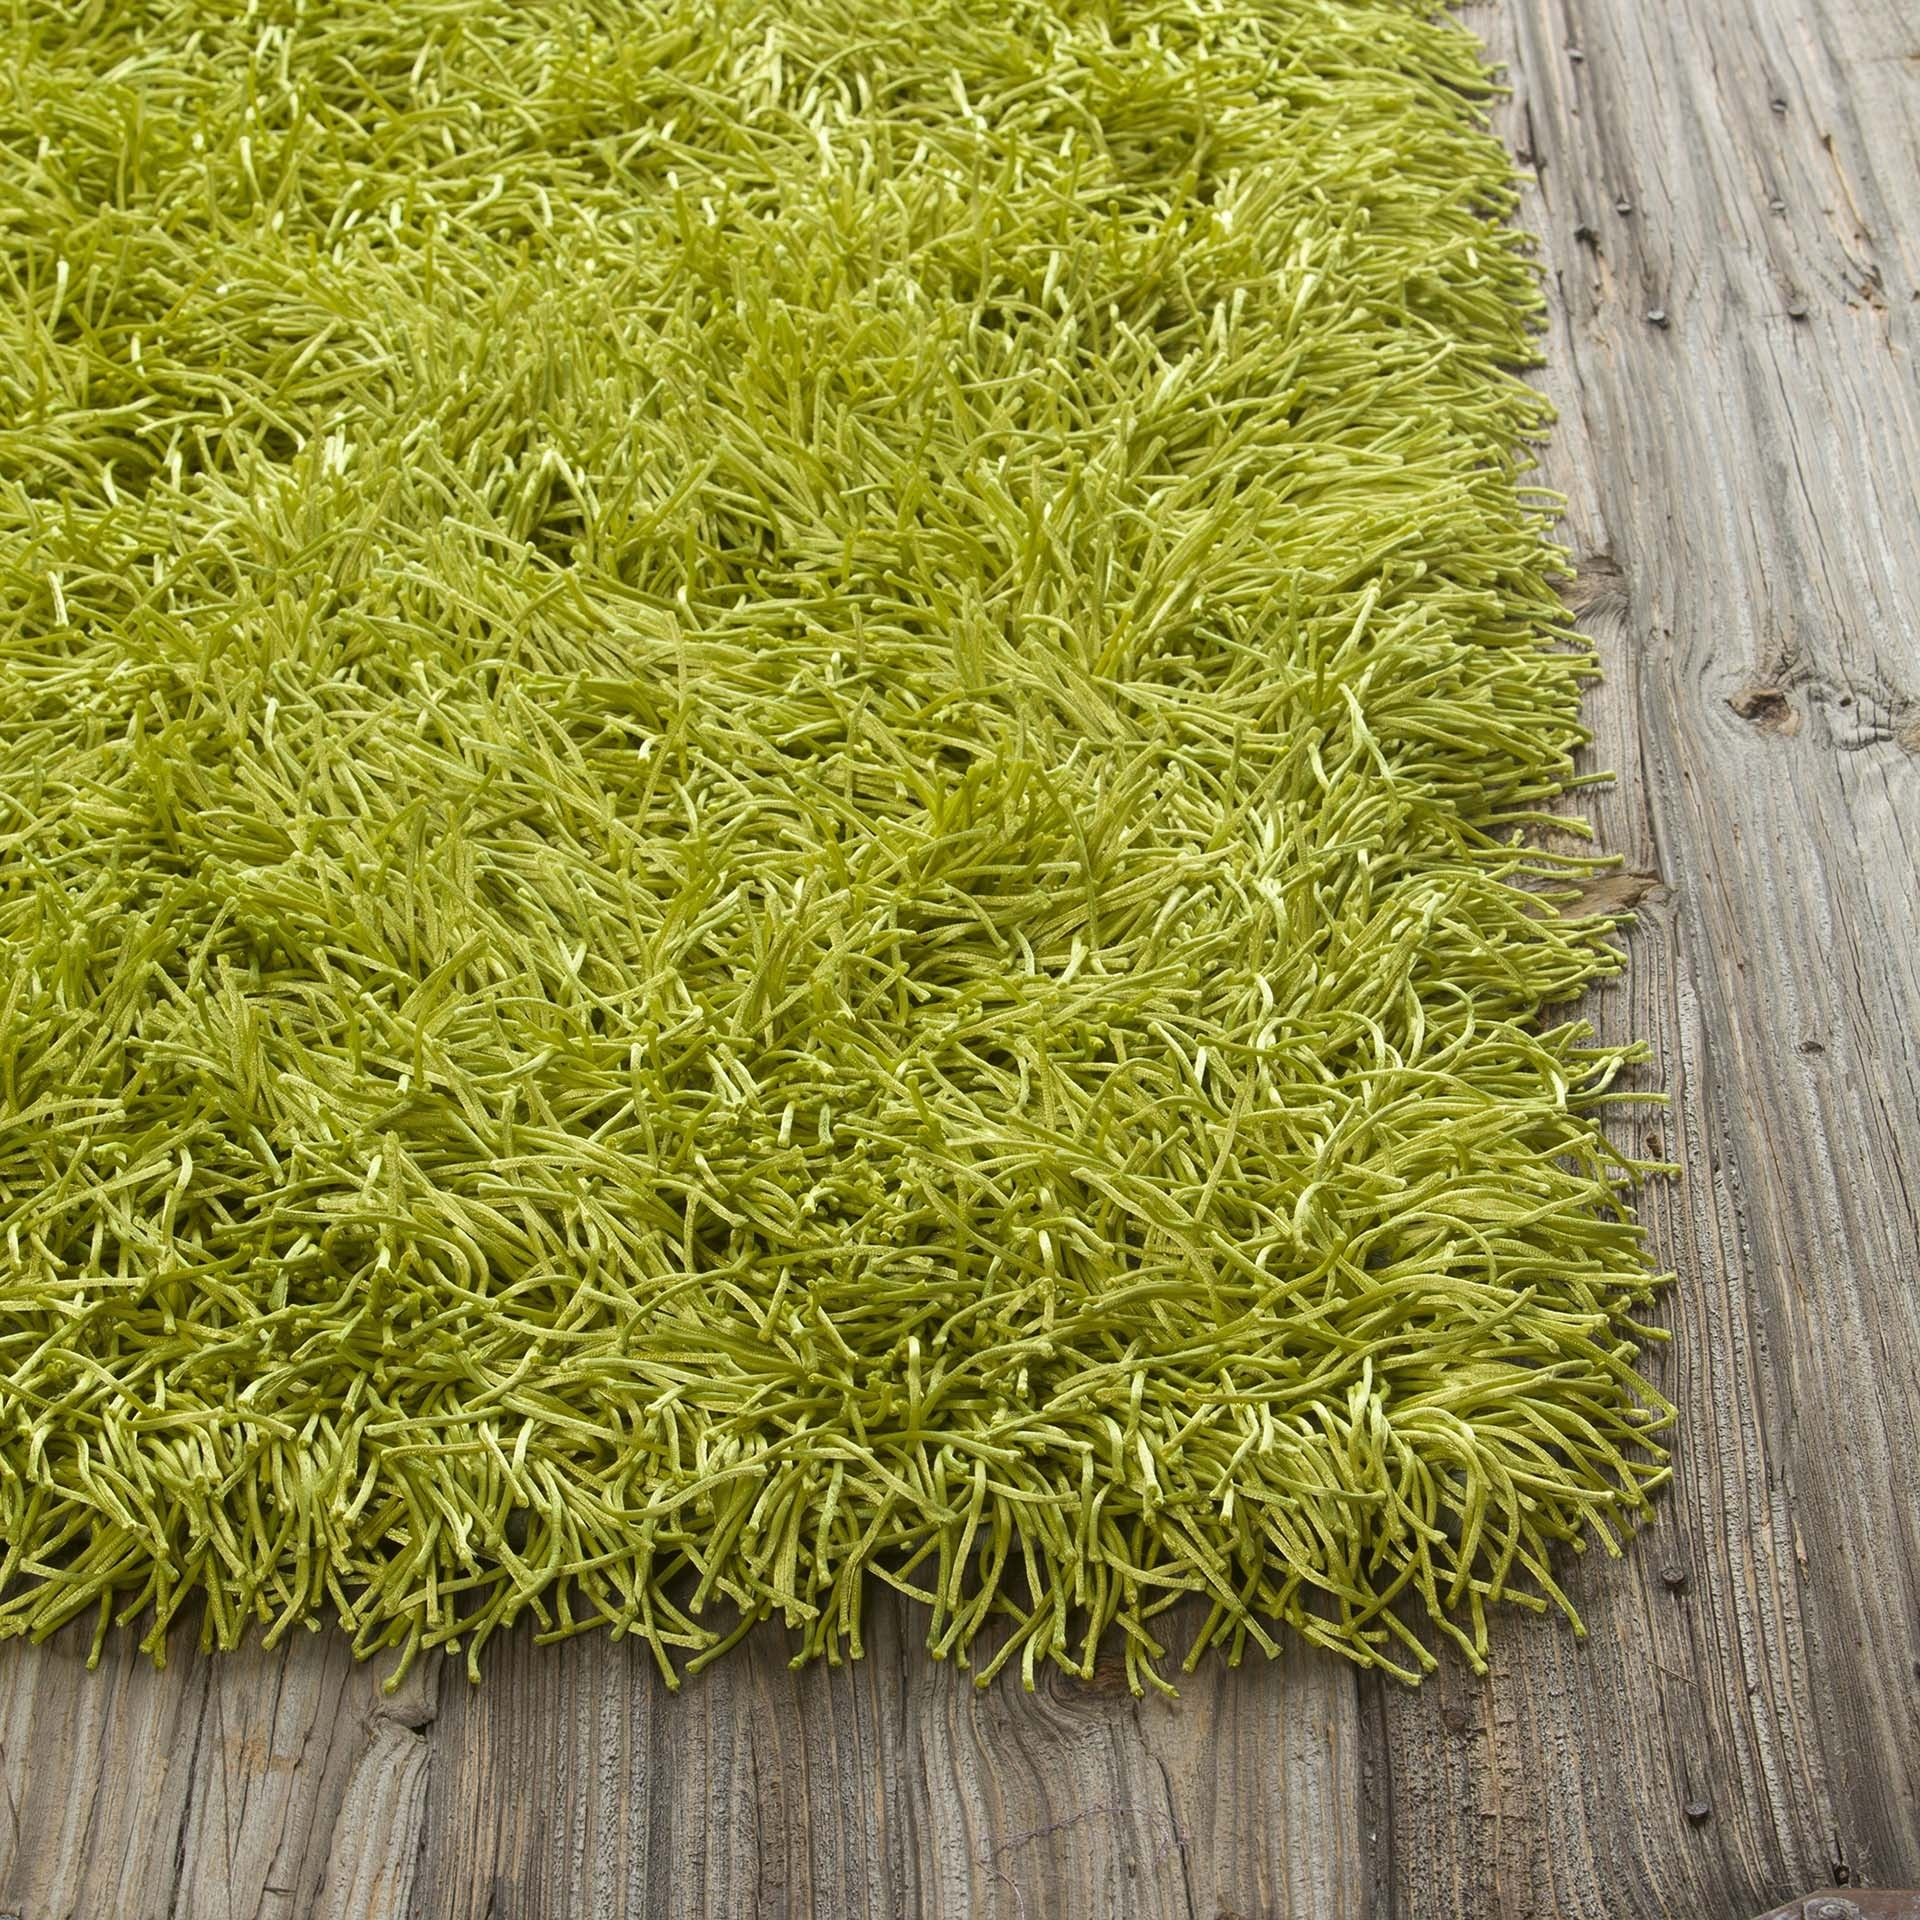 Interior Lime Green Carpet With White Floral Pattern With Wool Pertaining To Green Wool Area Rugs (#8 of 15)